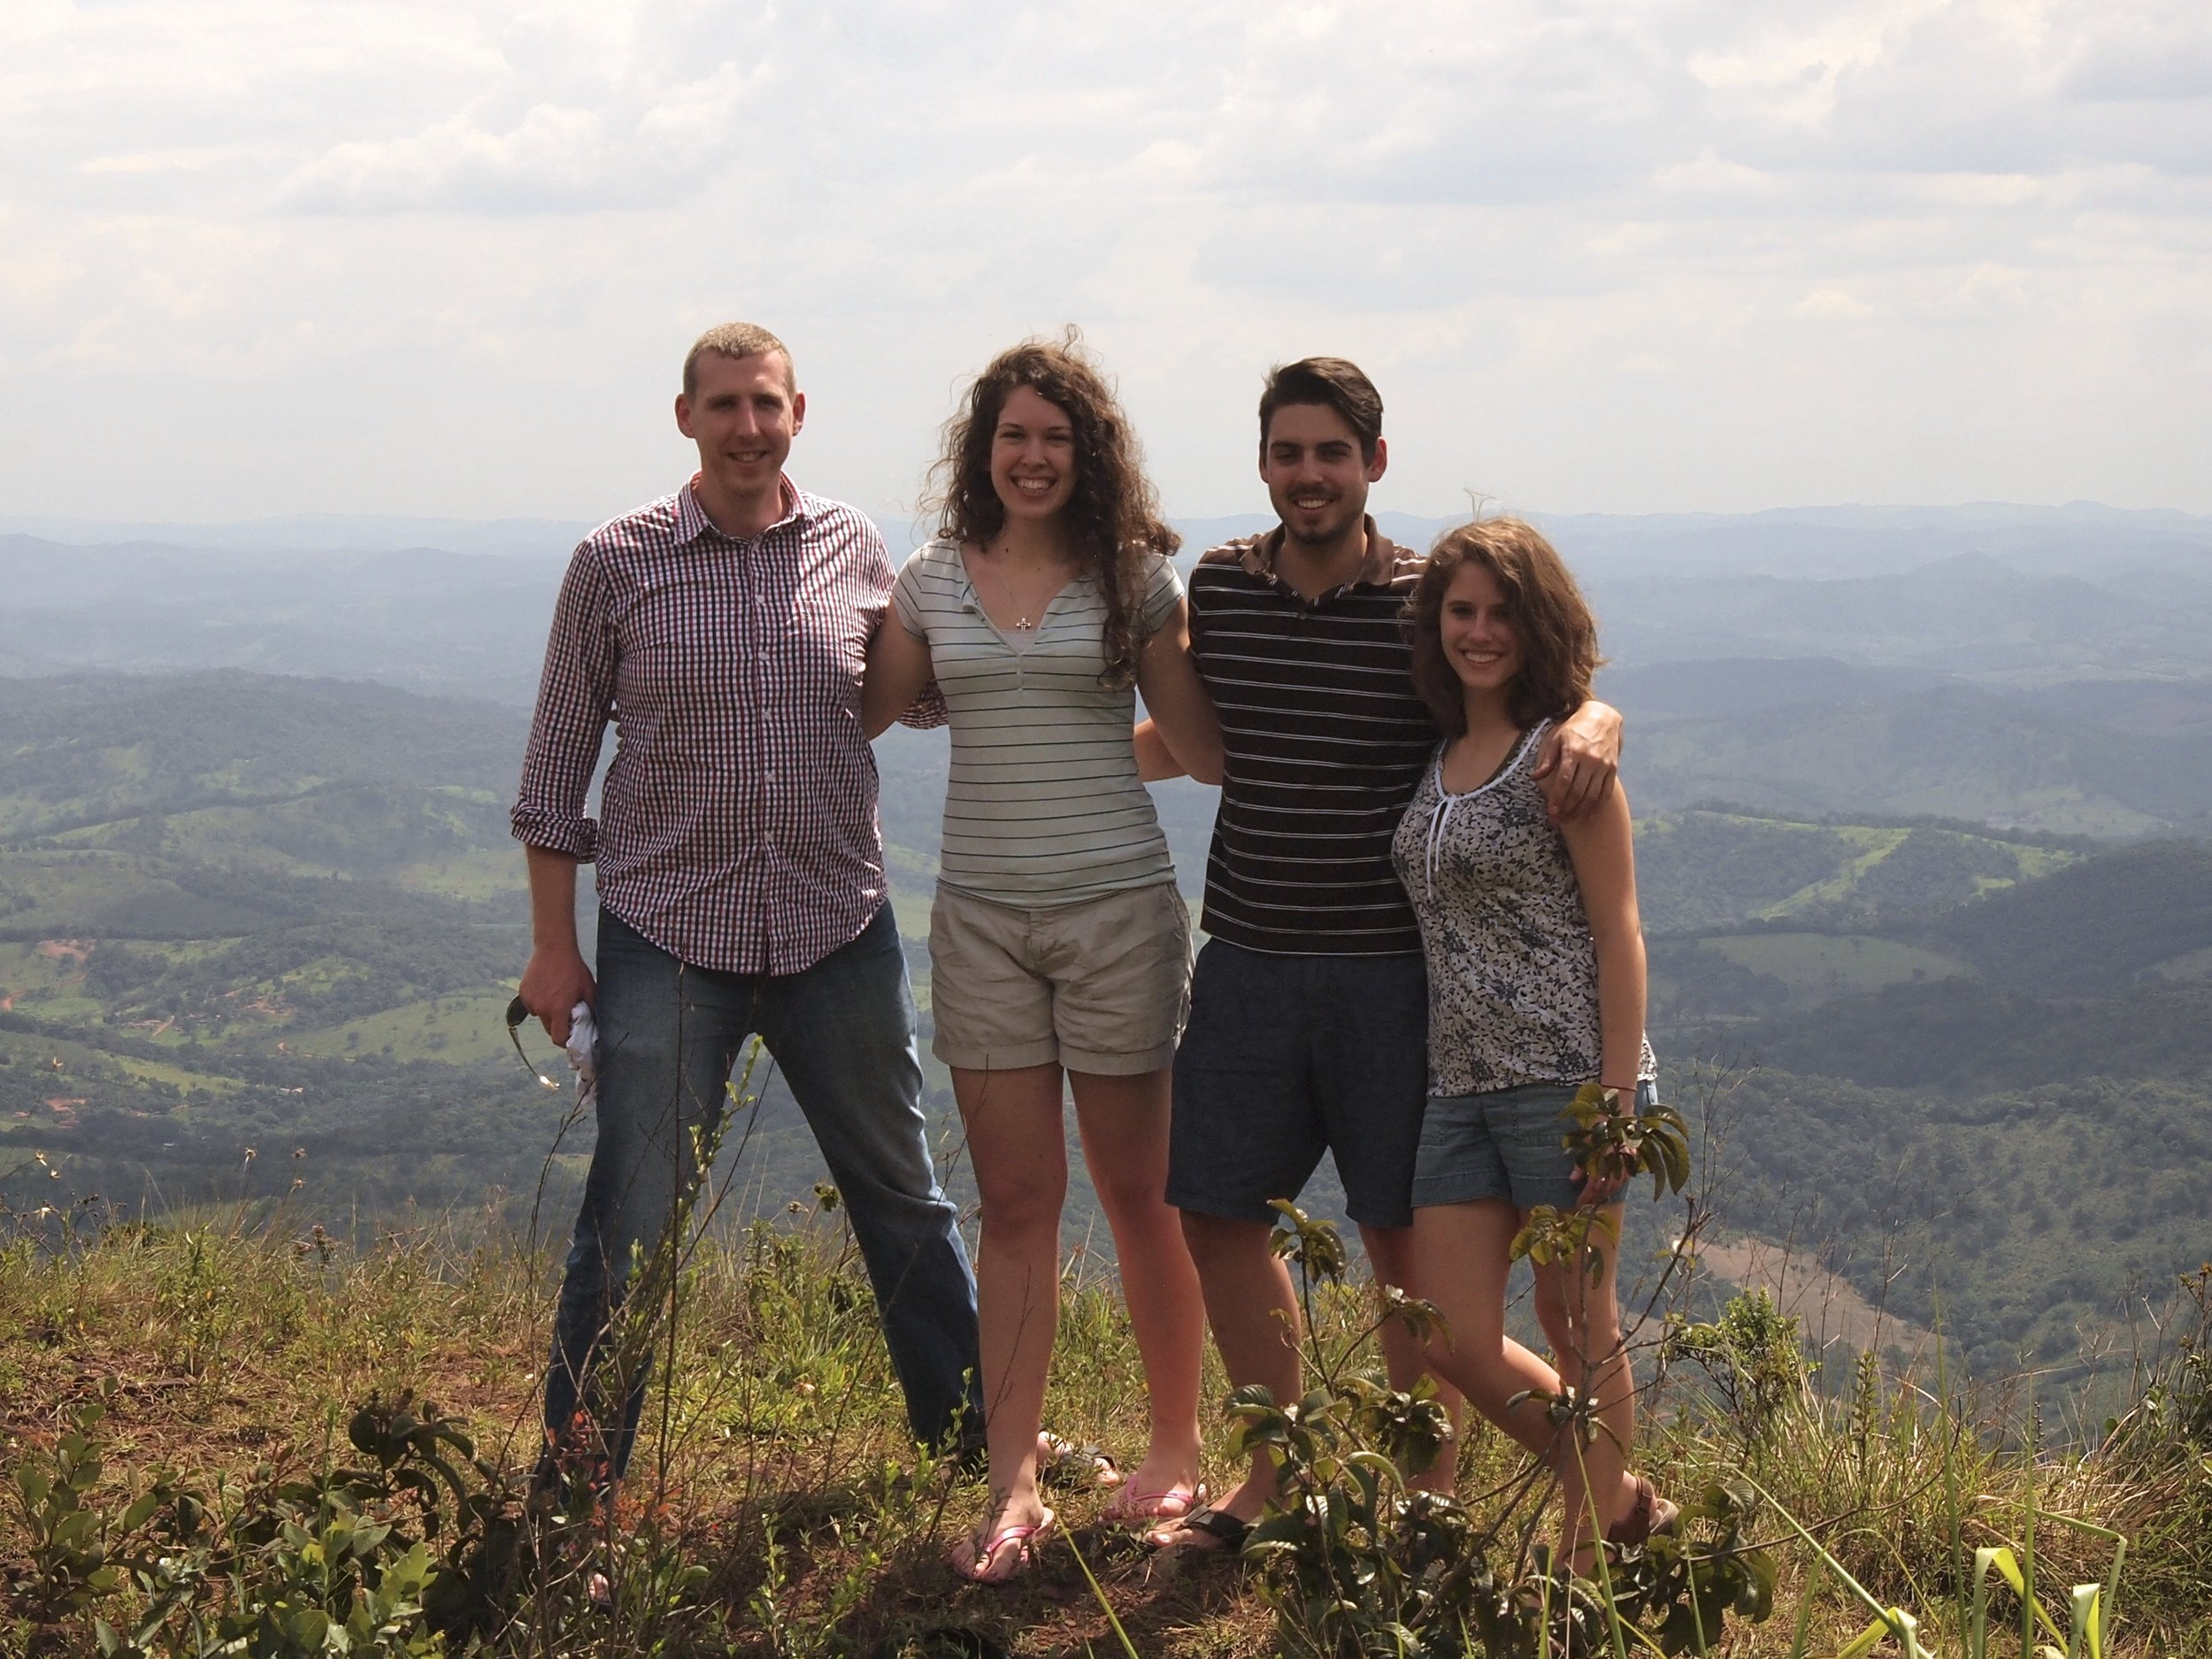 (l-r): Dr. Dru Johnson, Serenity Reichardson, Elijah McCready and Carolanne Ausband in Brazil. Used with permission.